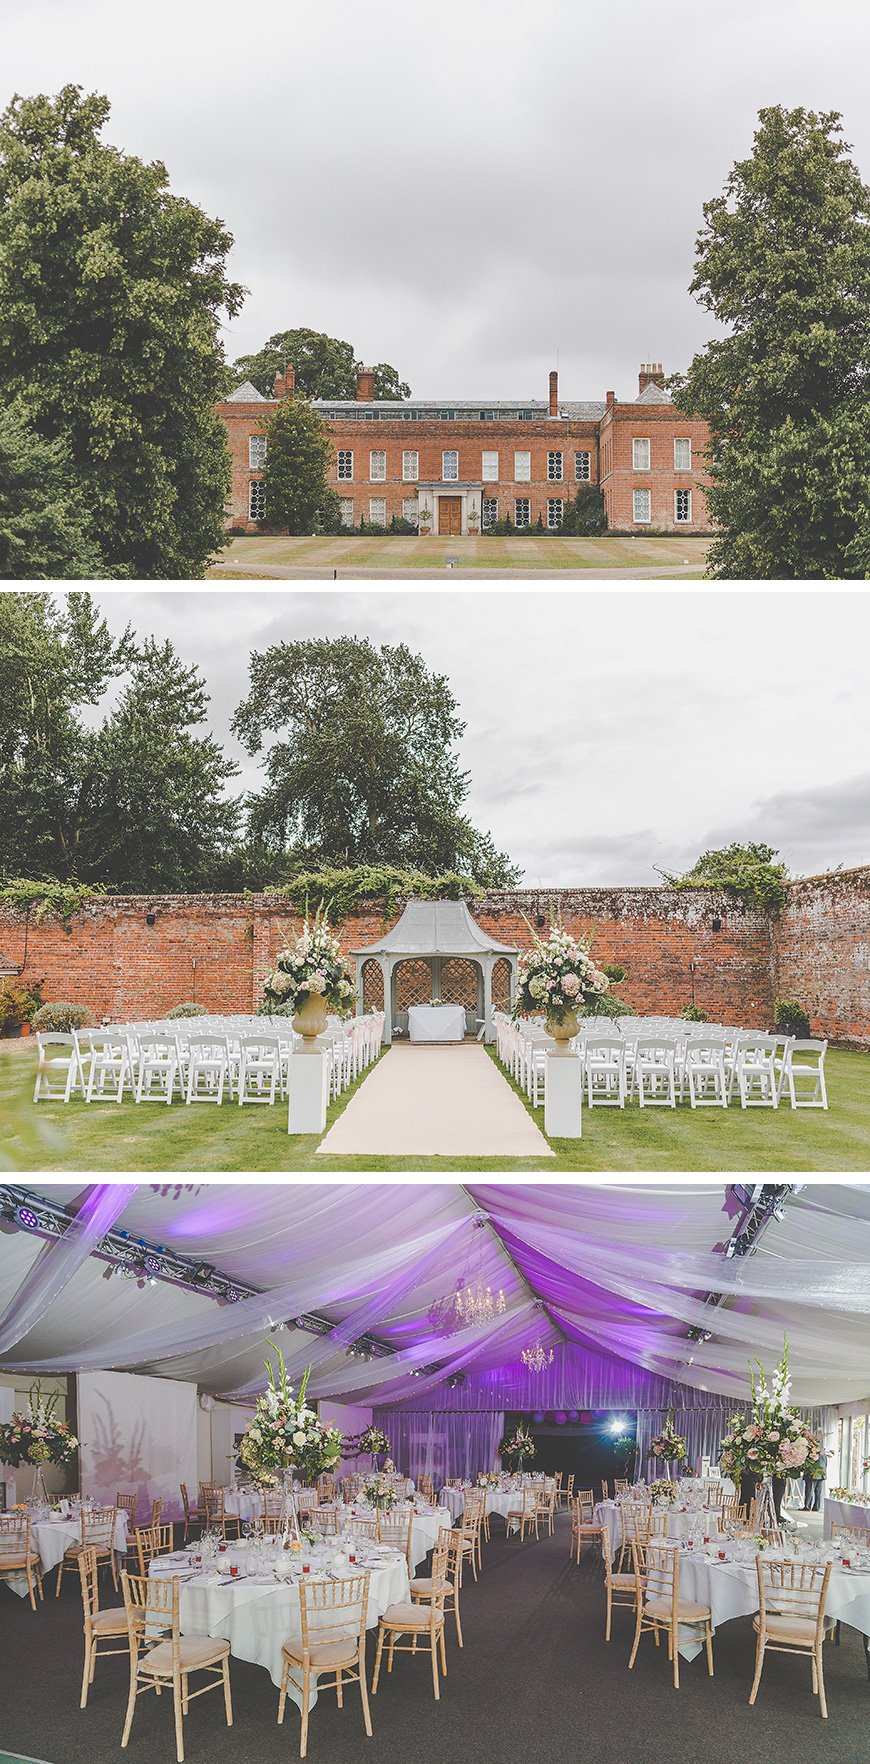 Zillia and Martyn's Pastel Summer Wedding At Braxted Park - The venue | CHWV